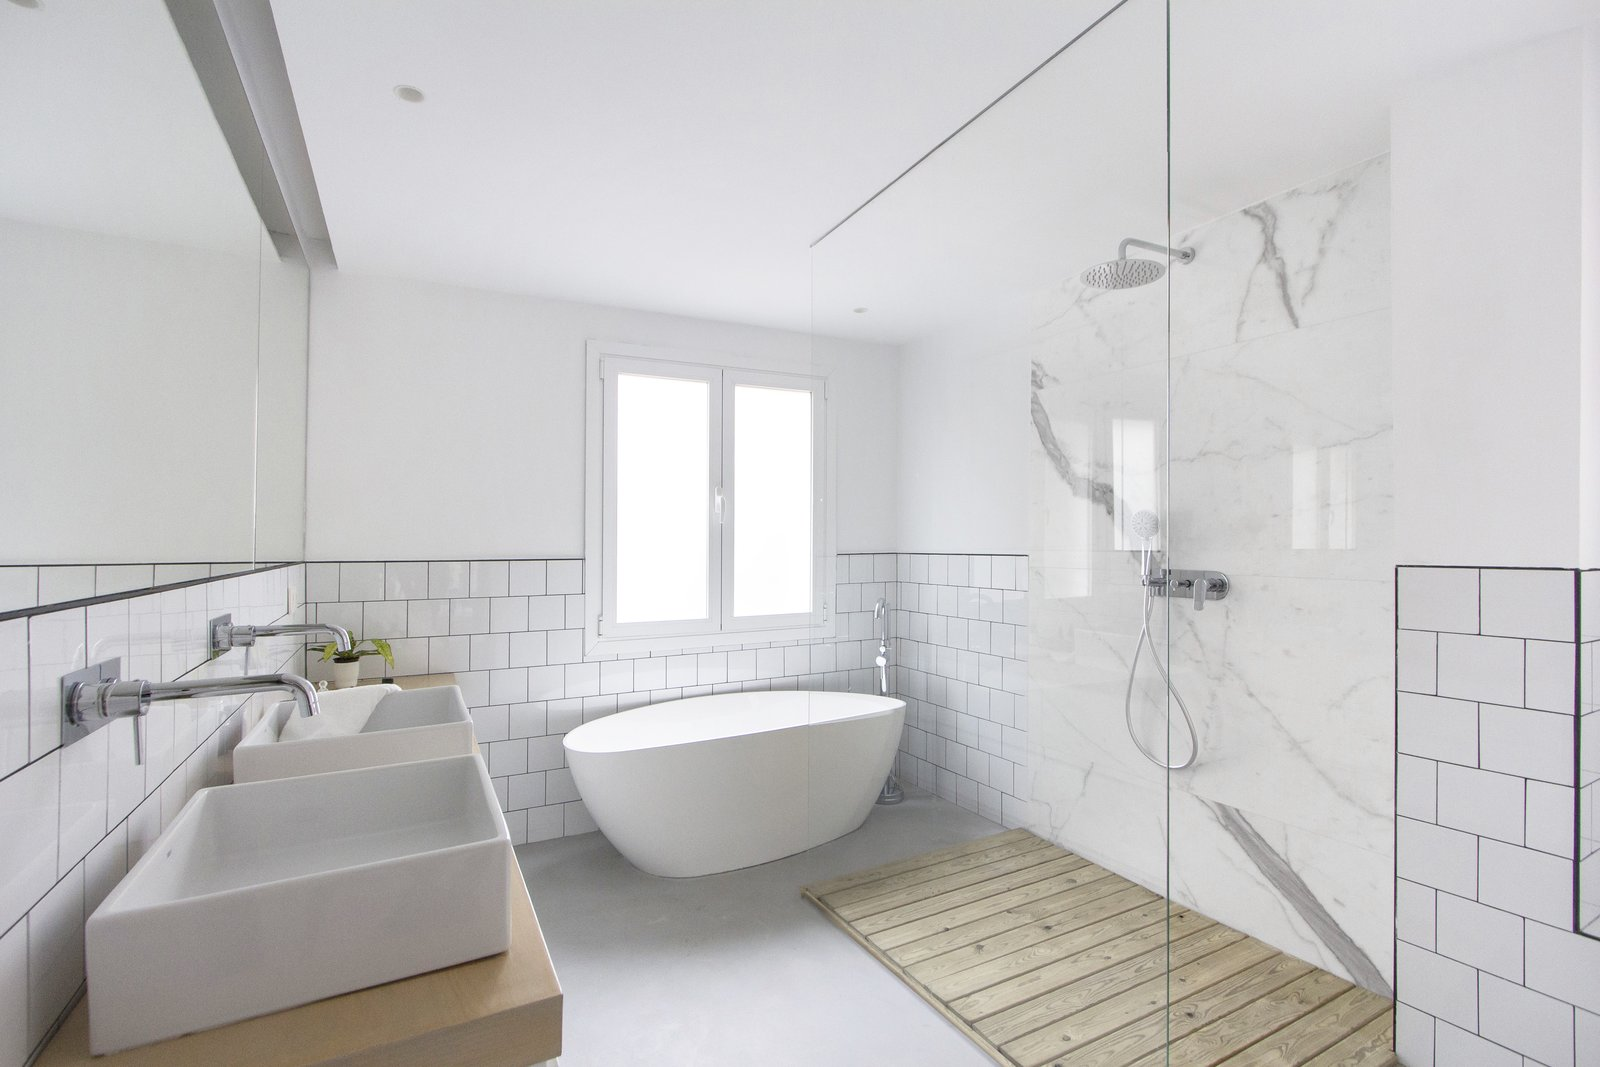 Bath, Freestanding, Open, Marble, Wood, Ceramic Tile, Two Piece, Concrete, Vessel, Ceiling, and Concrete 014.CASA PEX  Best Bath Freestanding Vessel Marble Concrete Ceramic Tile Wood Photos from 014.PEX 114